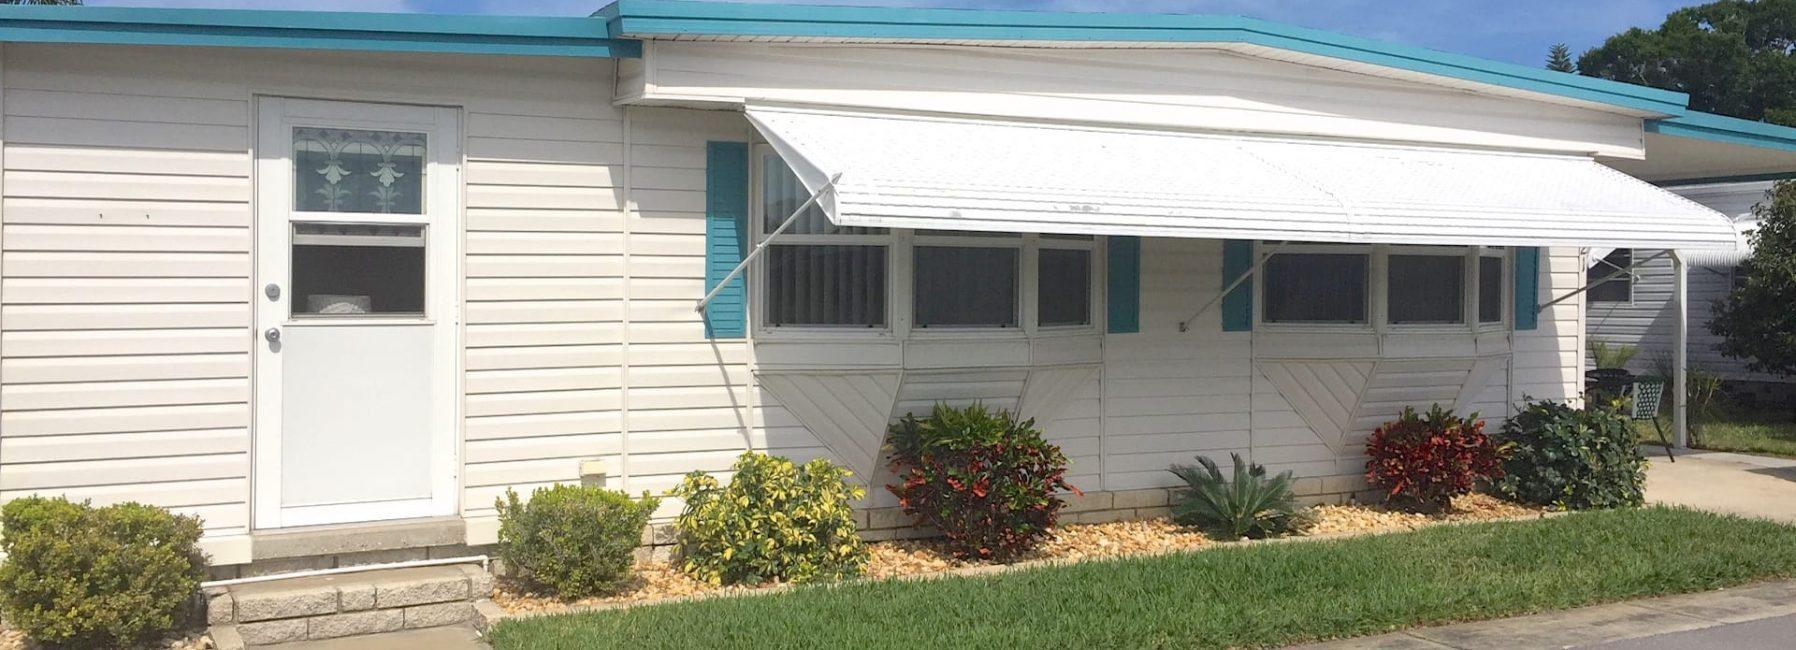 mobile homes for sale clearwater fl with Sunsetmhs on sunsetmhs furthermore A Mobile Home At Rainbow Court Cottages And Trailer Park Largo Fl also sunsetmhs additionally Default together with sunsetmhs.